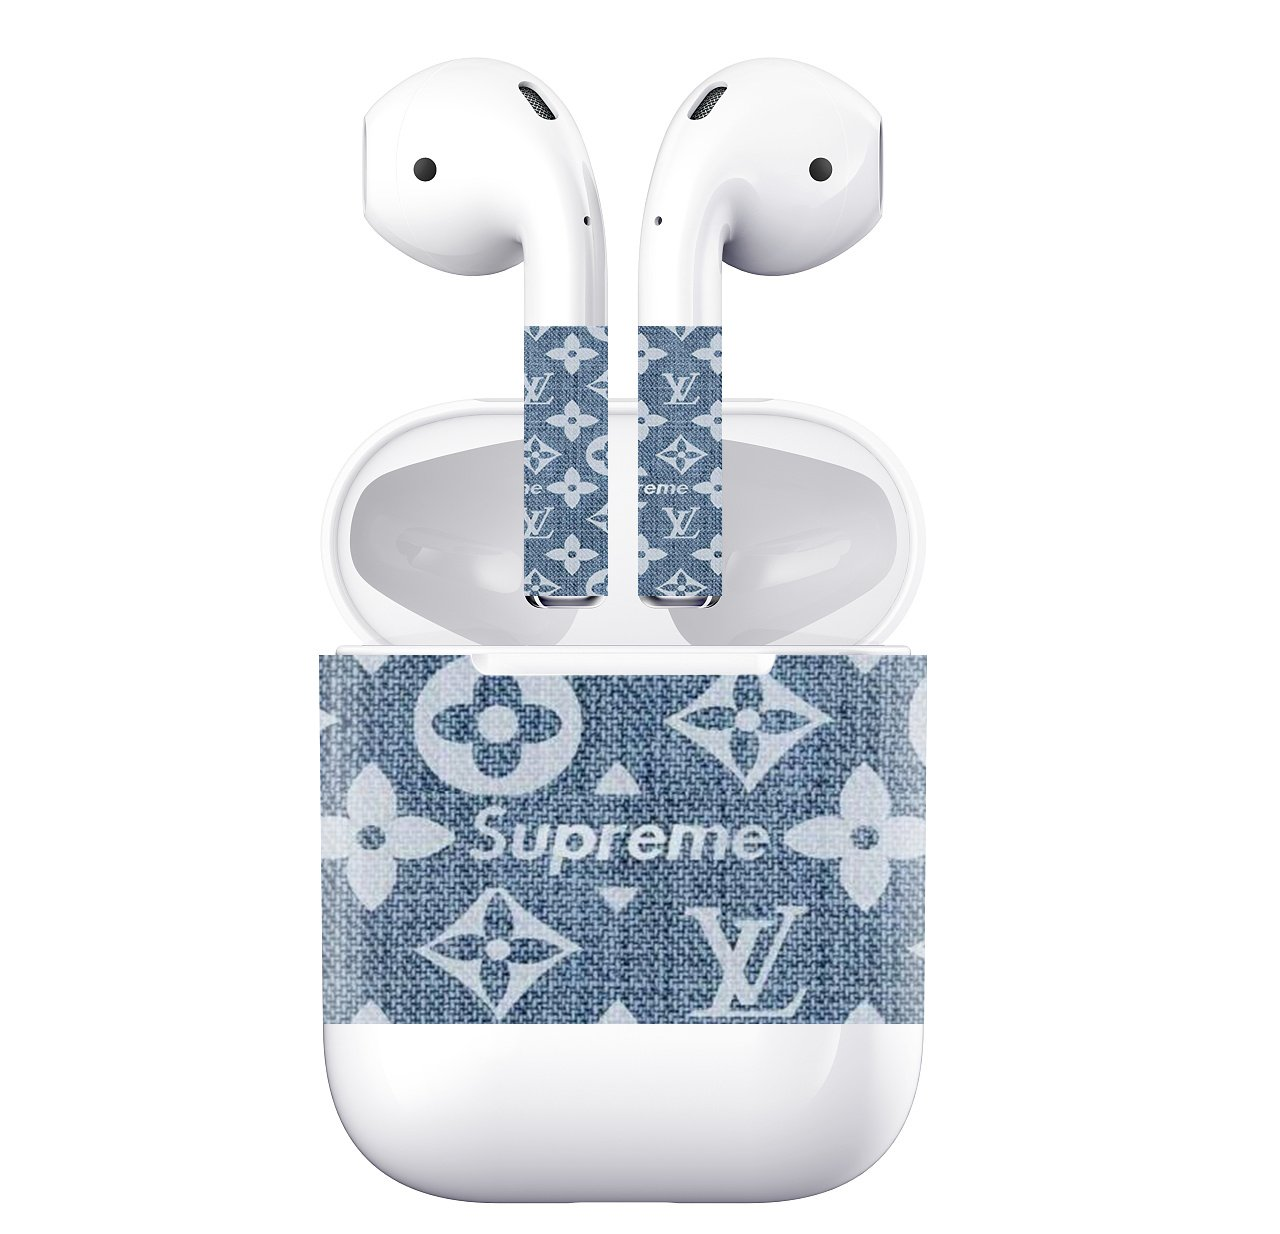 Supreme Luxury Style Jeans AirPods Skin Sticker Adhesive Protective Decal  For Apple AirPods 1 & 2